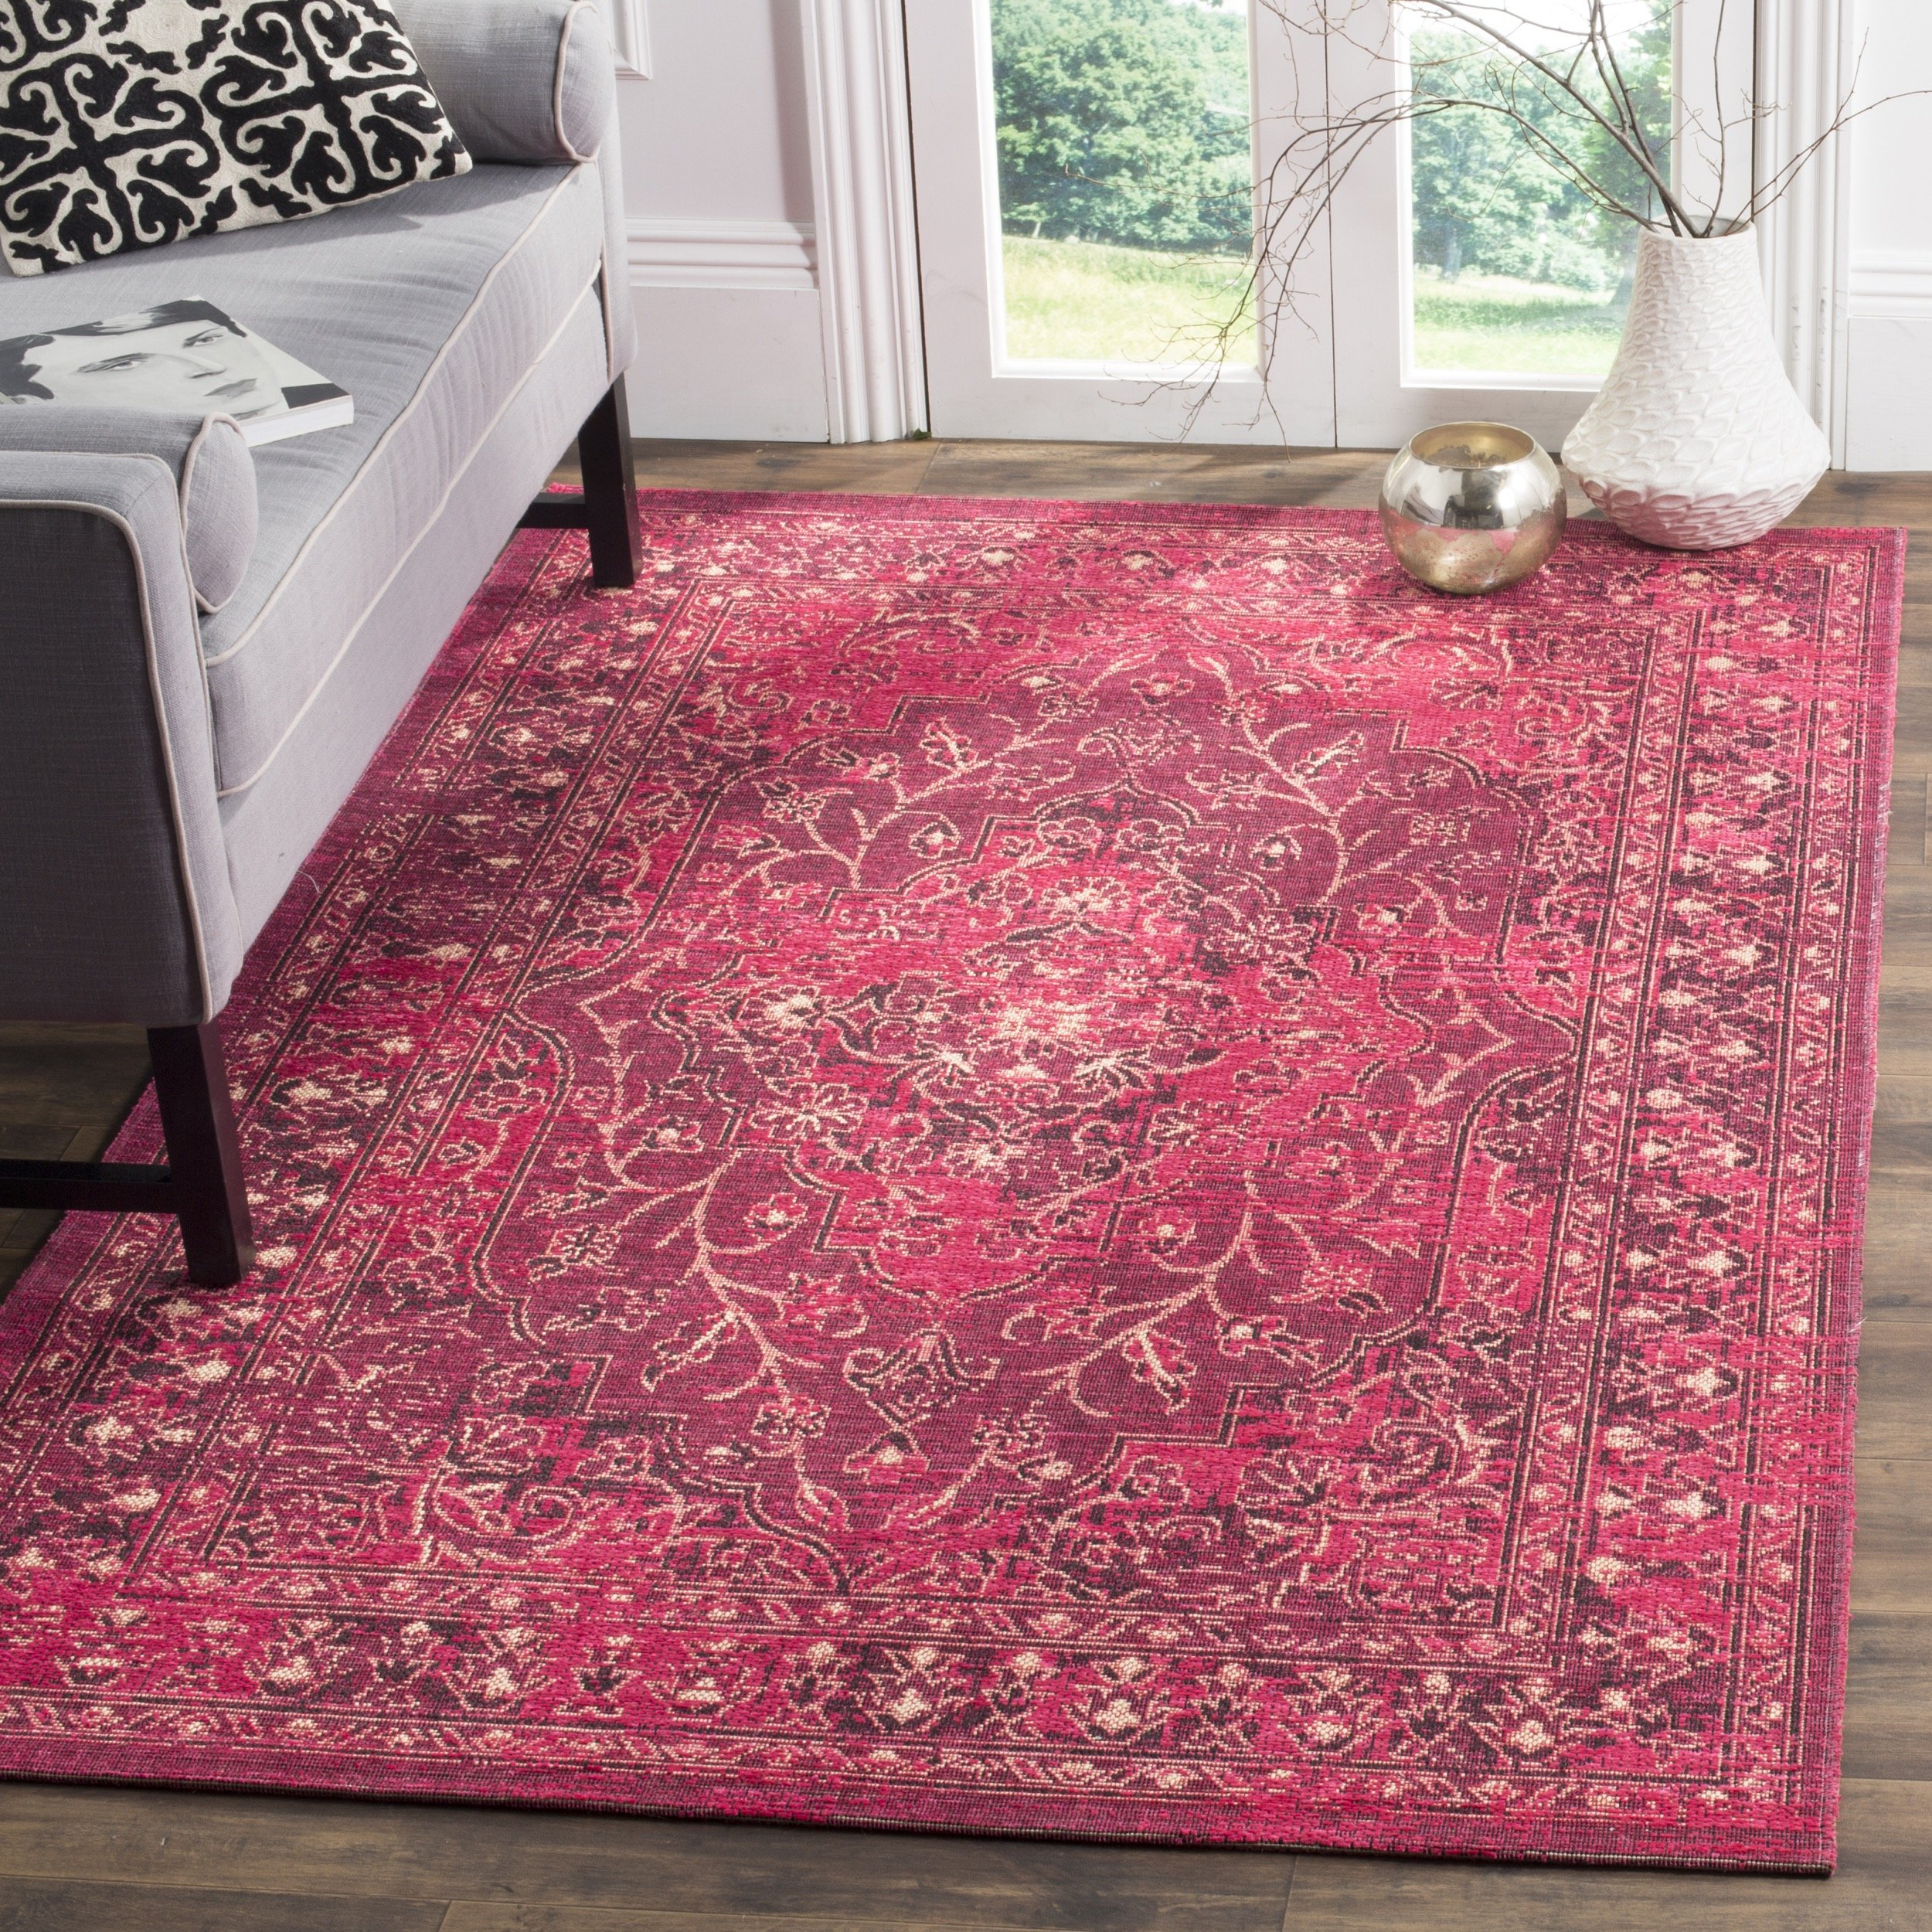 Safavieh Palazzo Collection PAL128-9033 Fuchsia and Black Area Rug, 2' x 3'6''